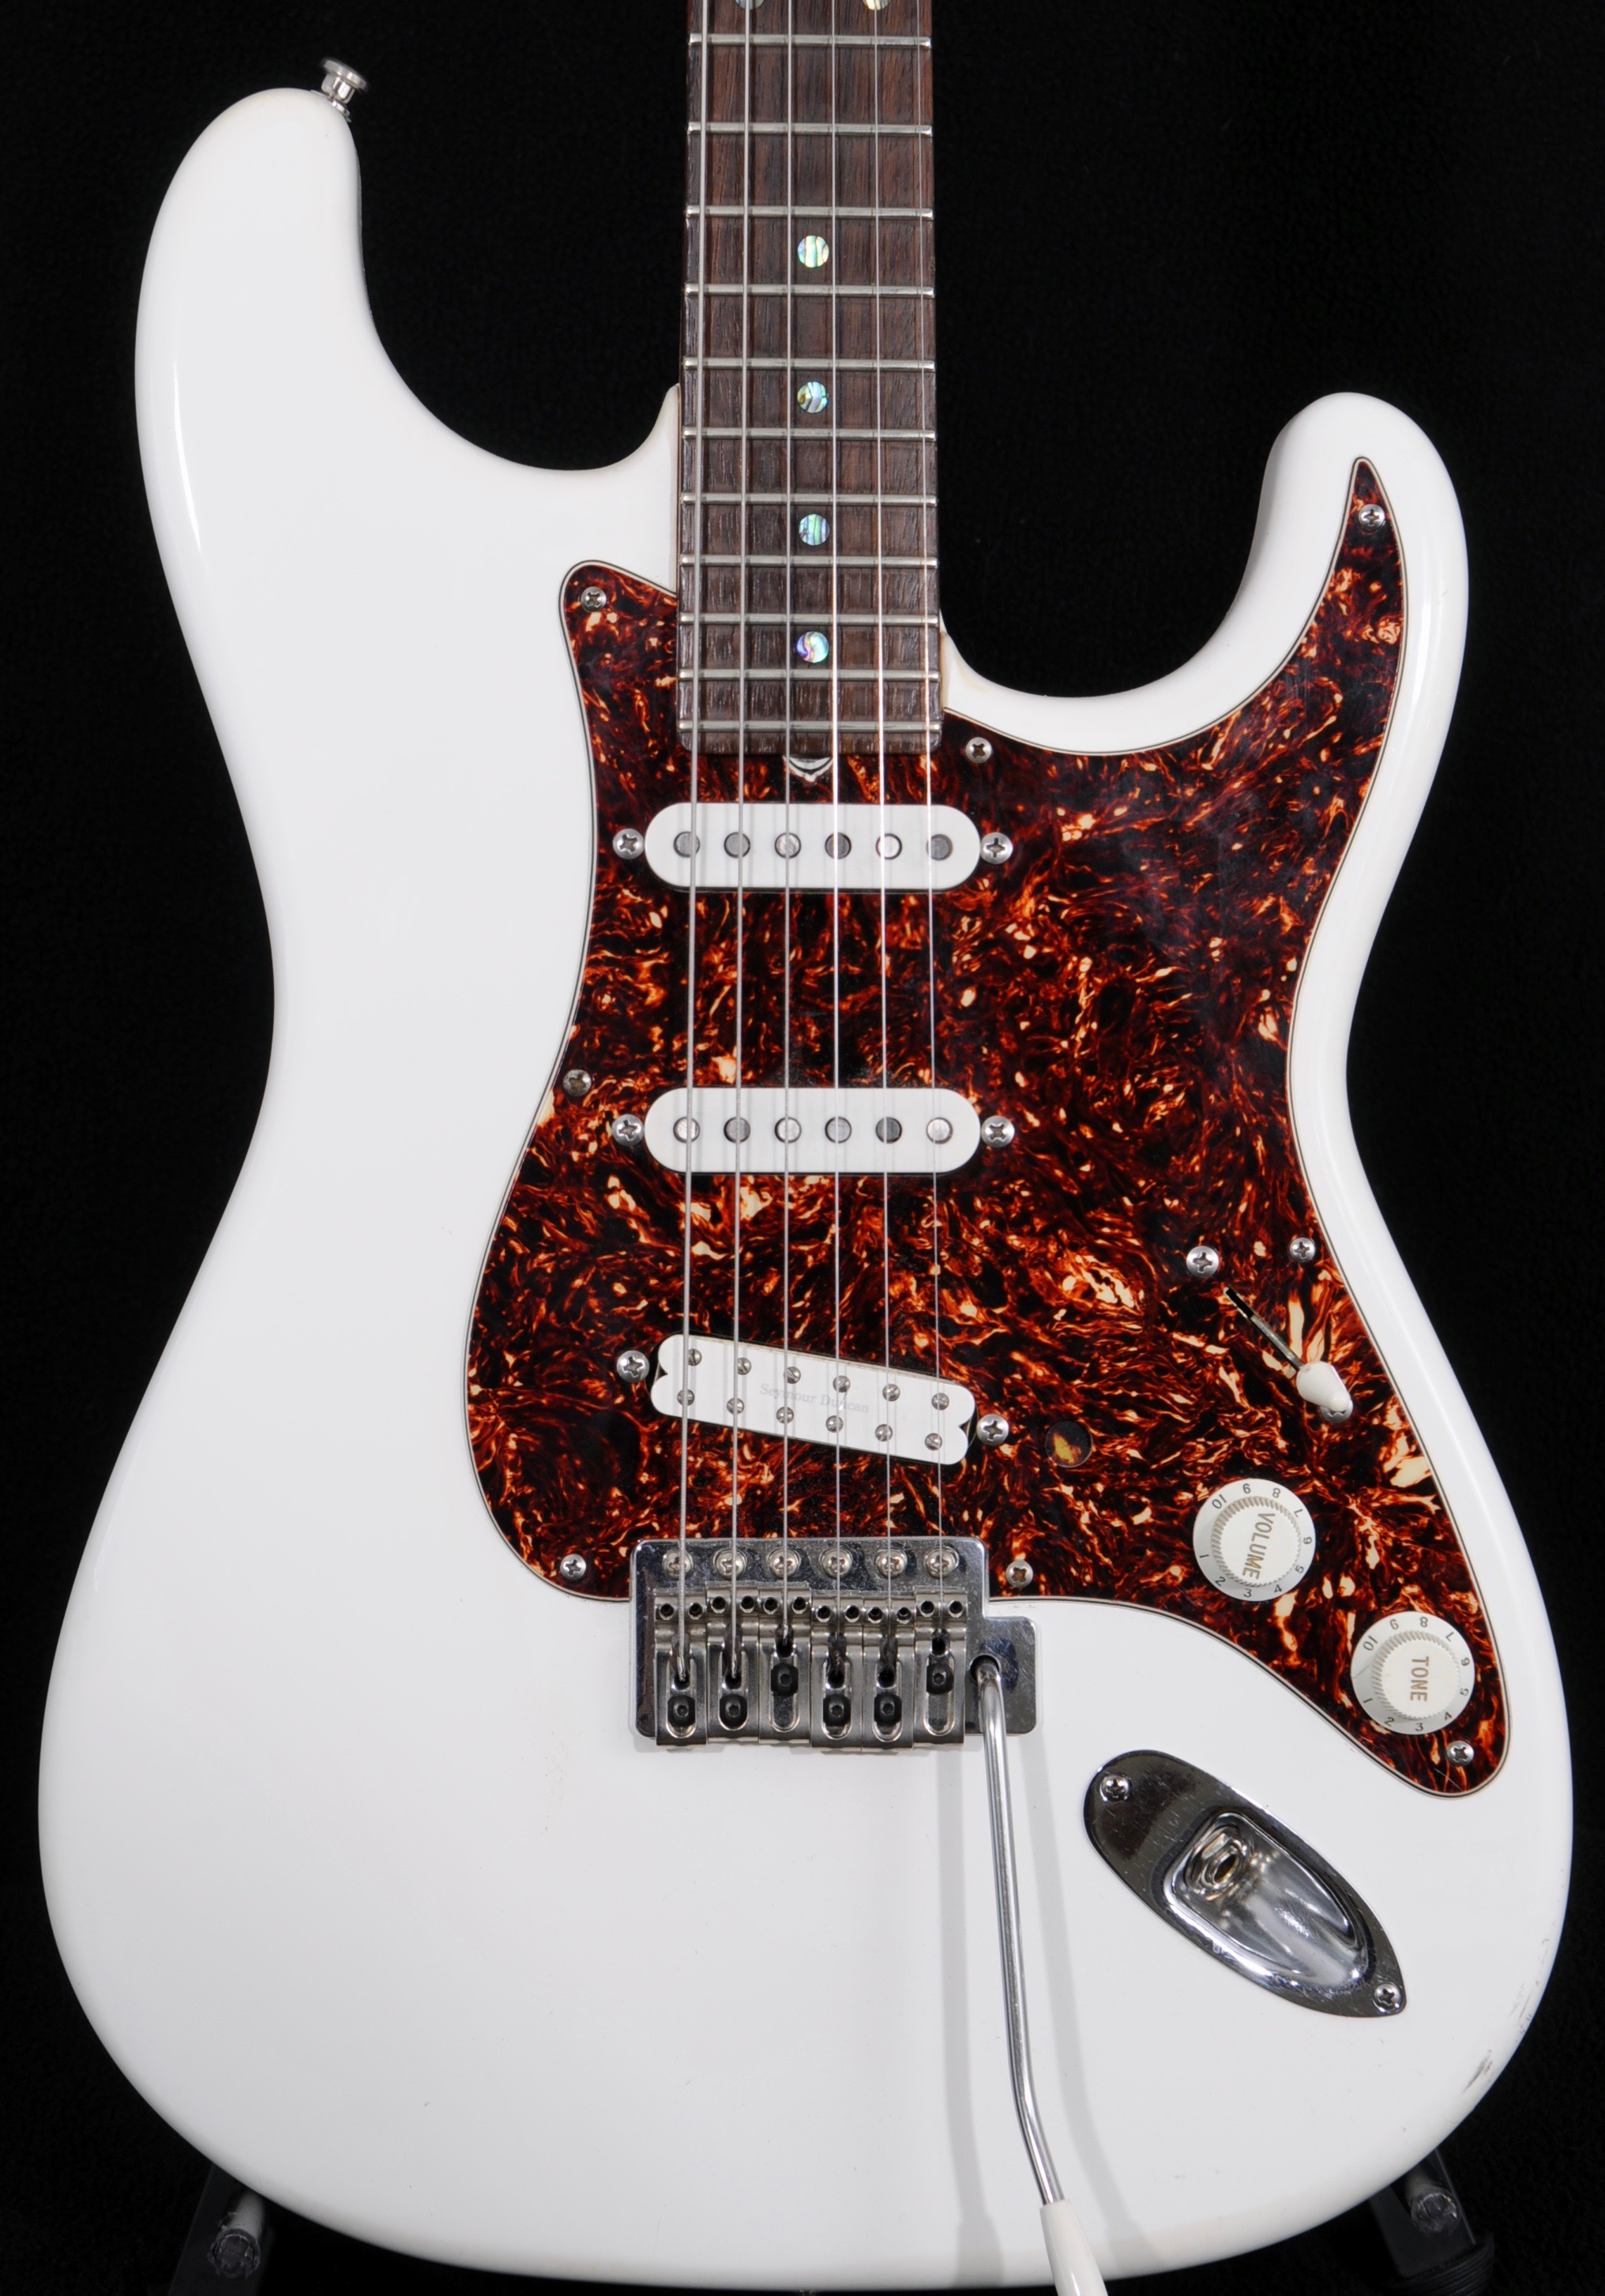 James Tyler USA Classic – Owned by Clint Black